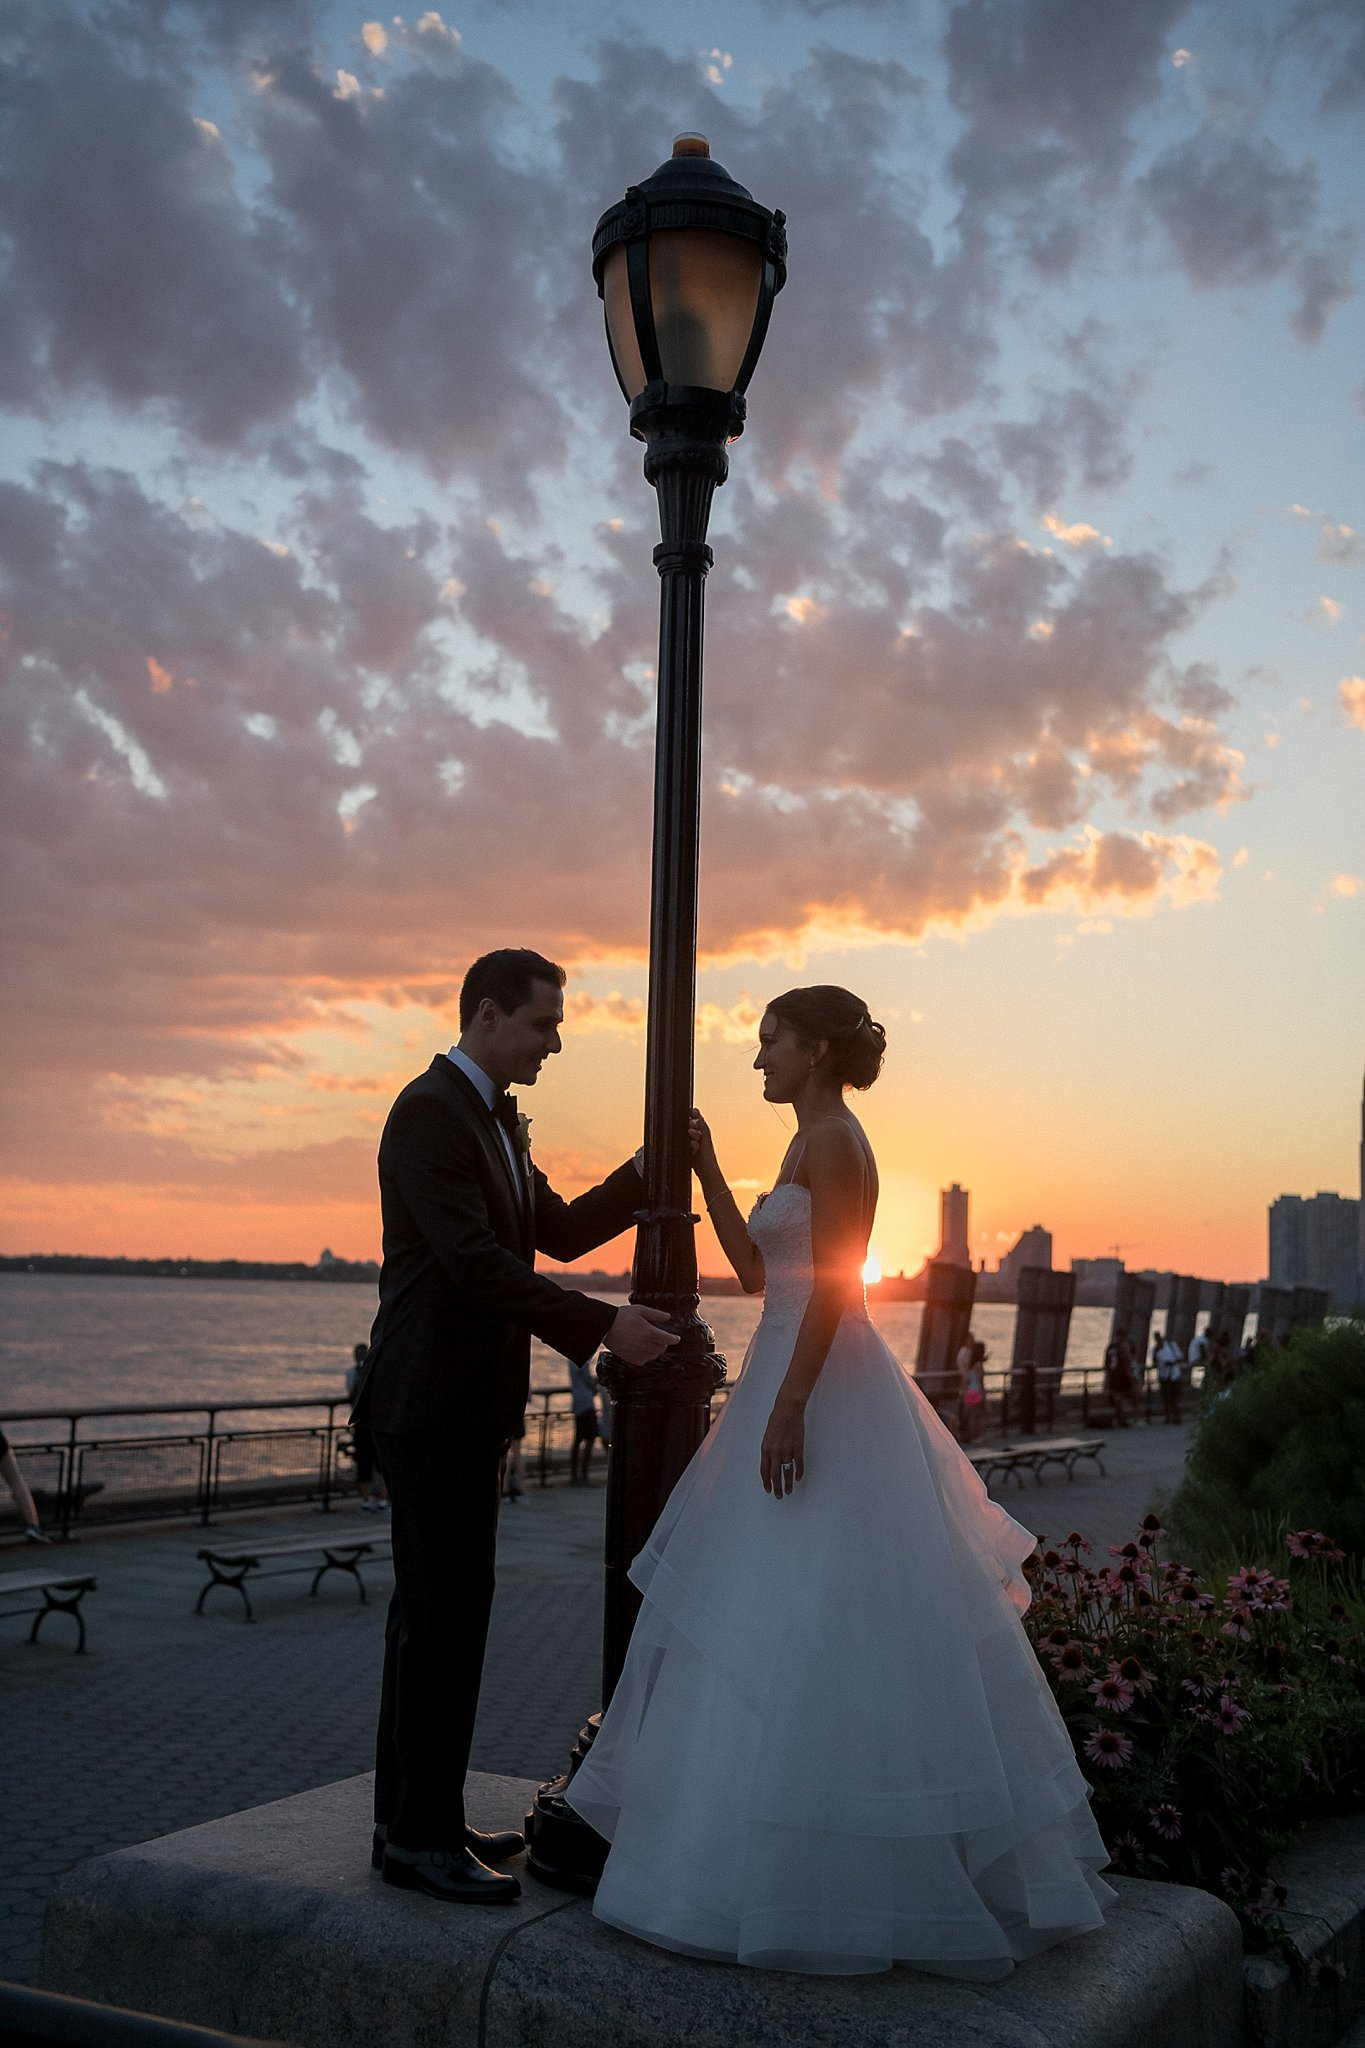 Married Couple's Private Photo session, , photographed by Susan Shek Wedding Photography in New York City, NY.